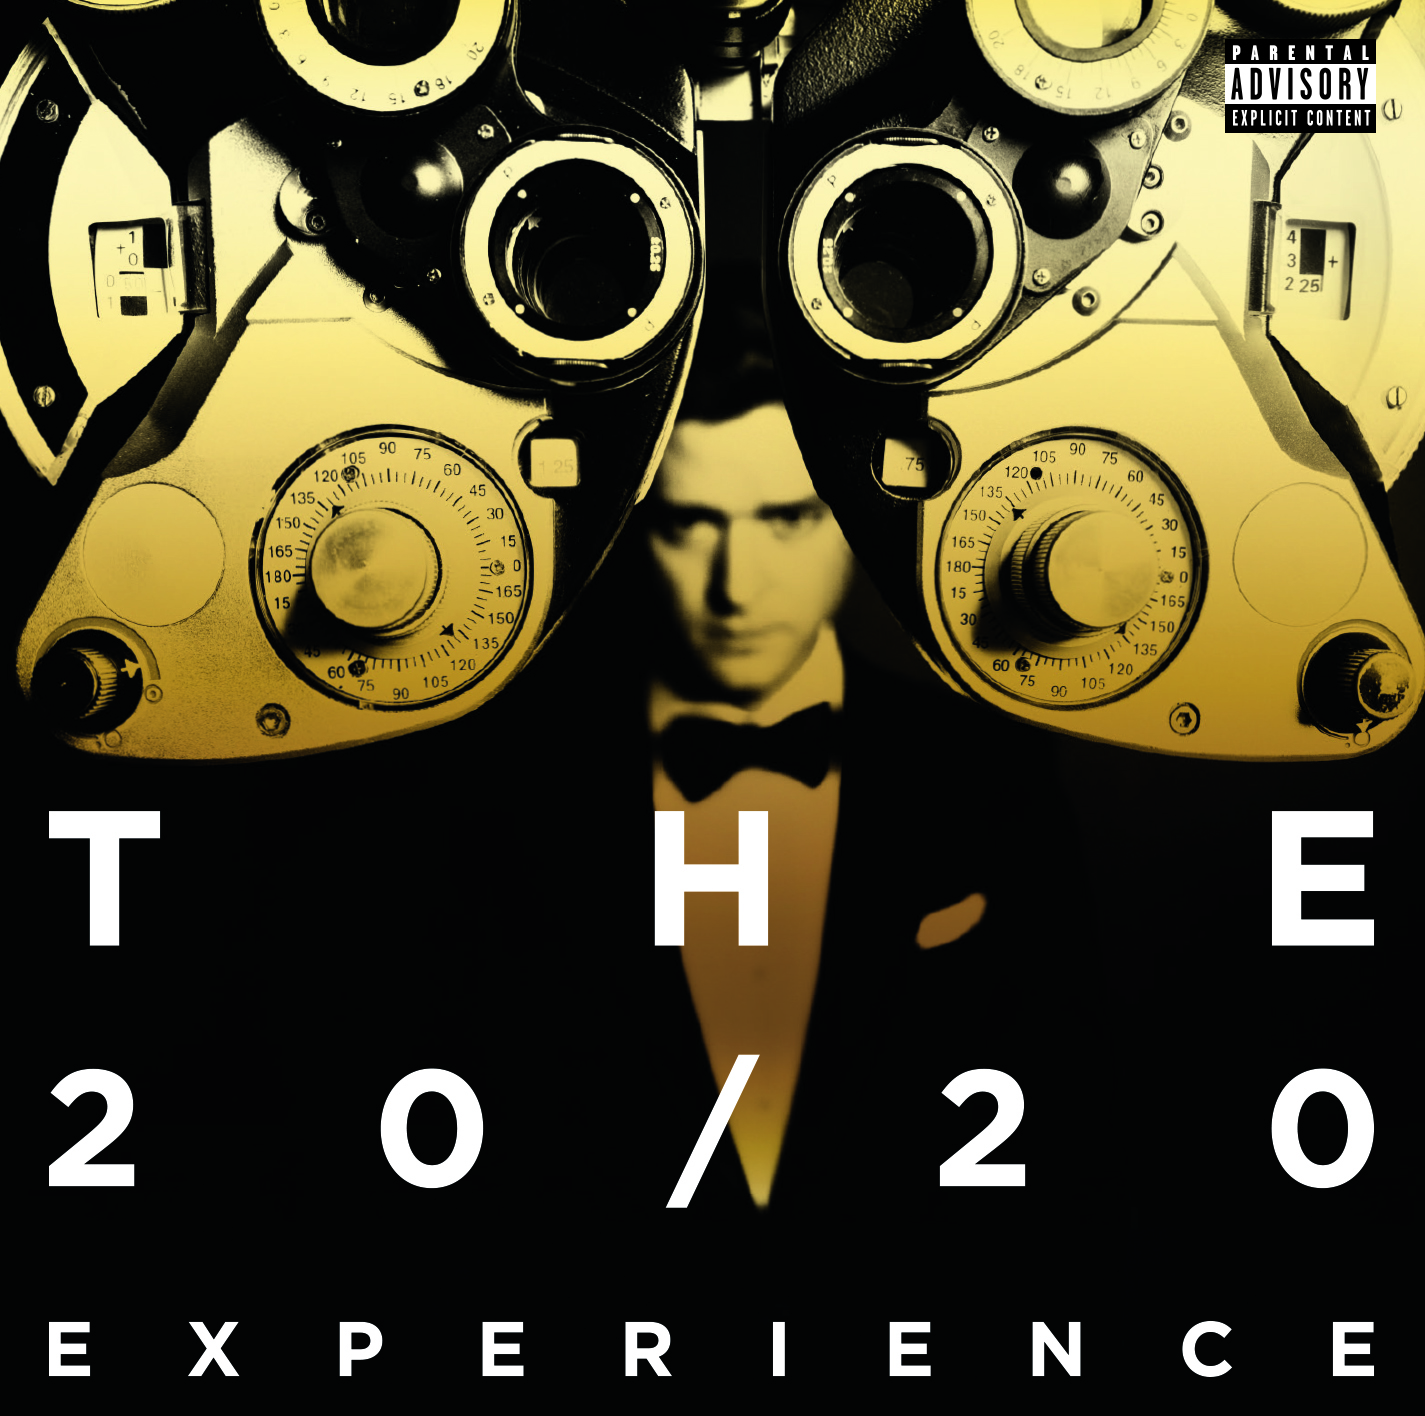 Justin Timberlake - The 20/20 Experience (2 of 2) (Album